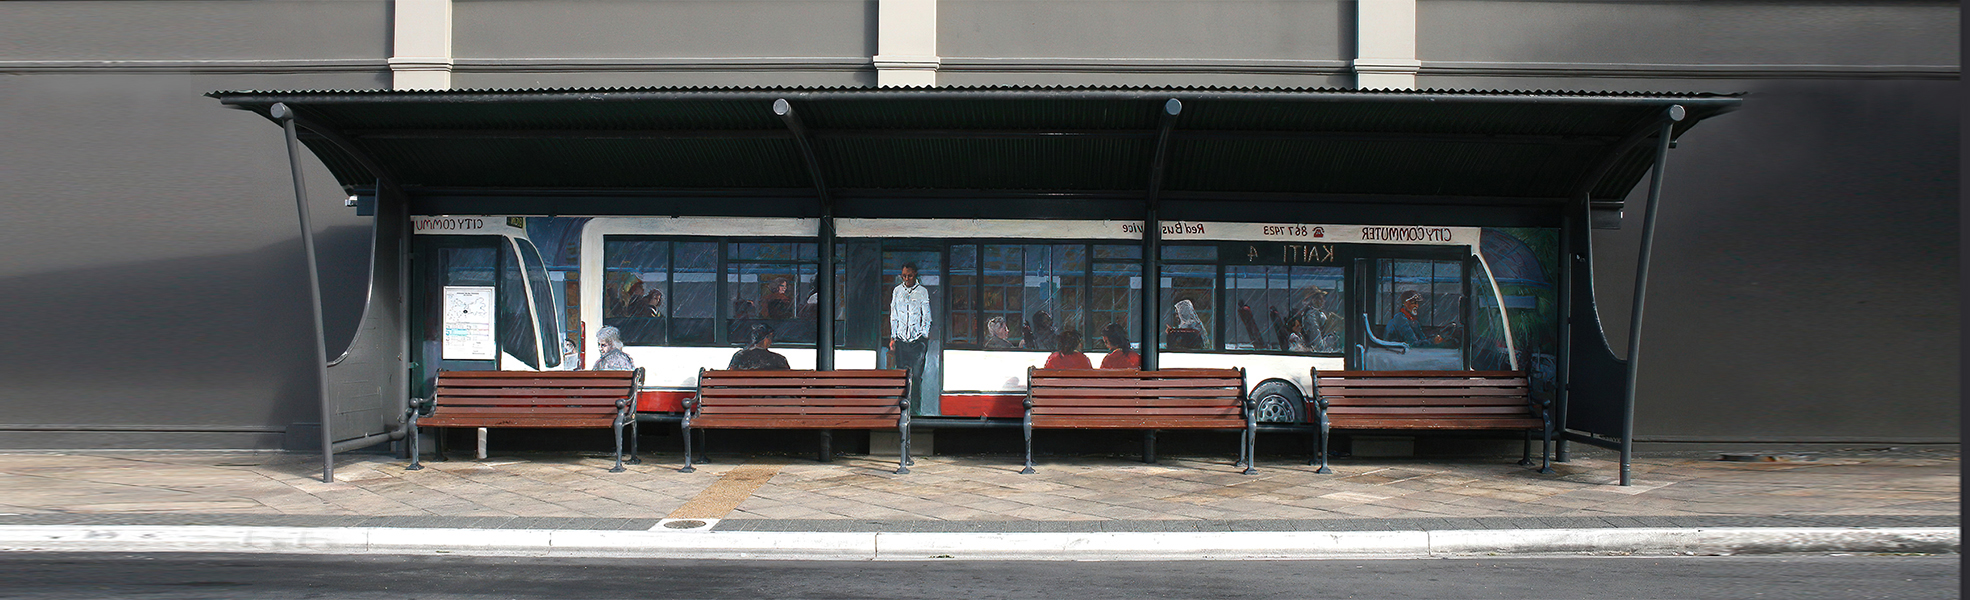 Gisborne Mudge Bus Shelter 1970602